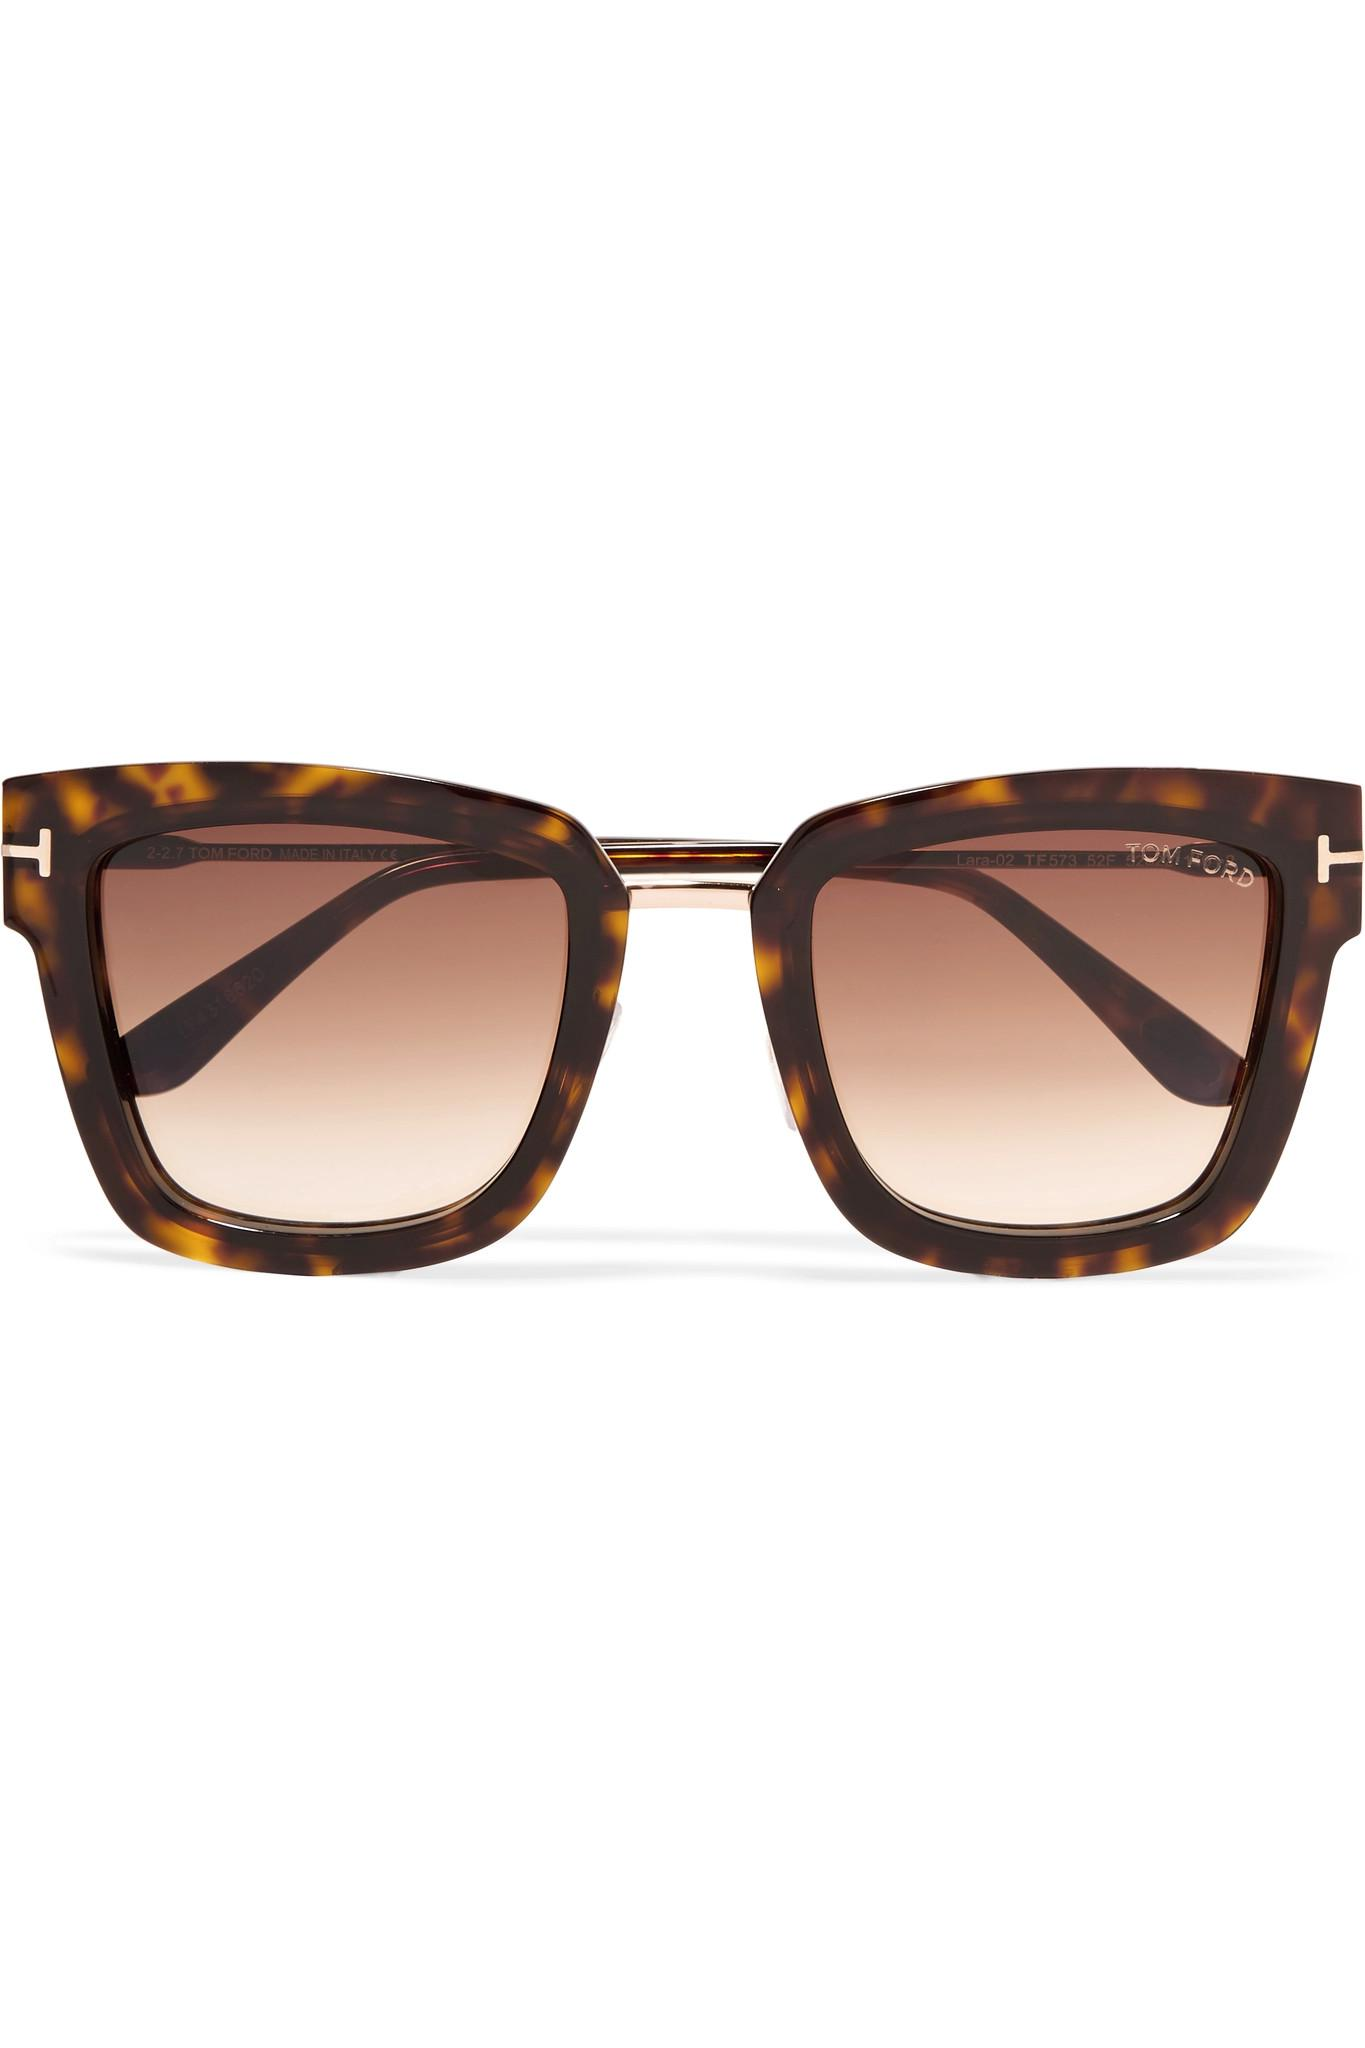 89a01649ae7d Tom Ford Square-frame Tortoiseshell Acetate Sunglasses in Brown - Lyst